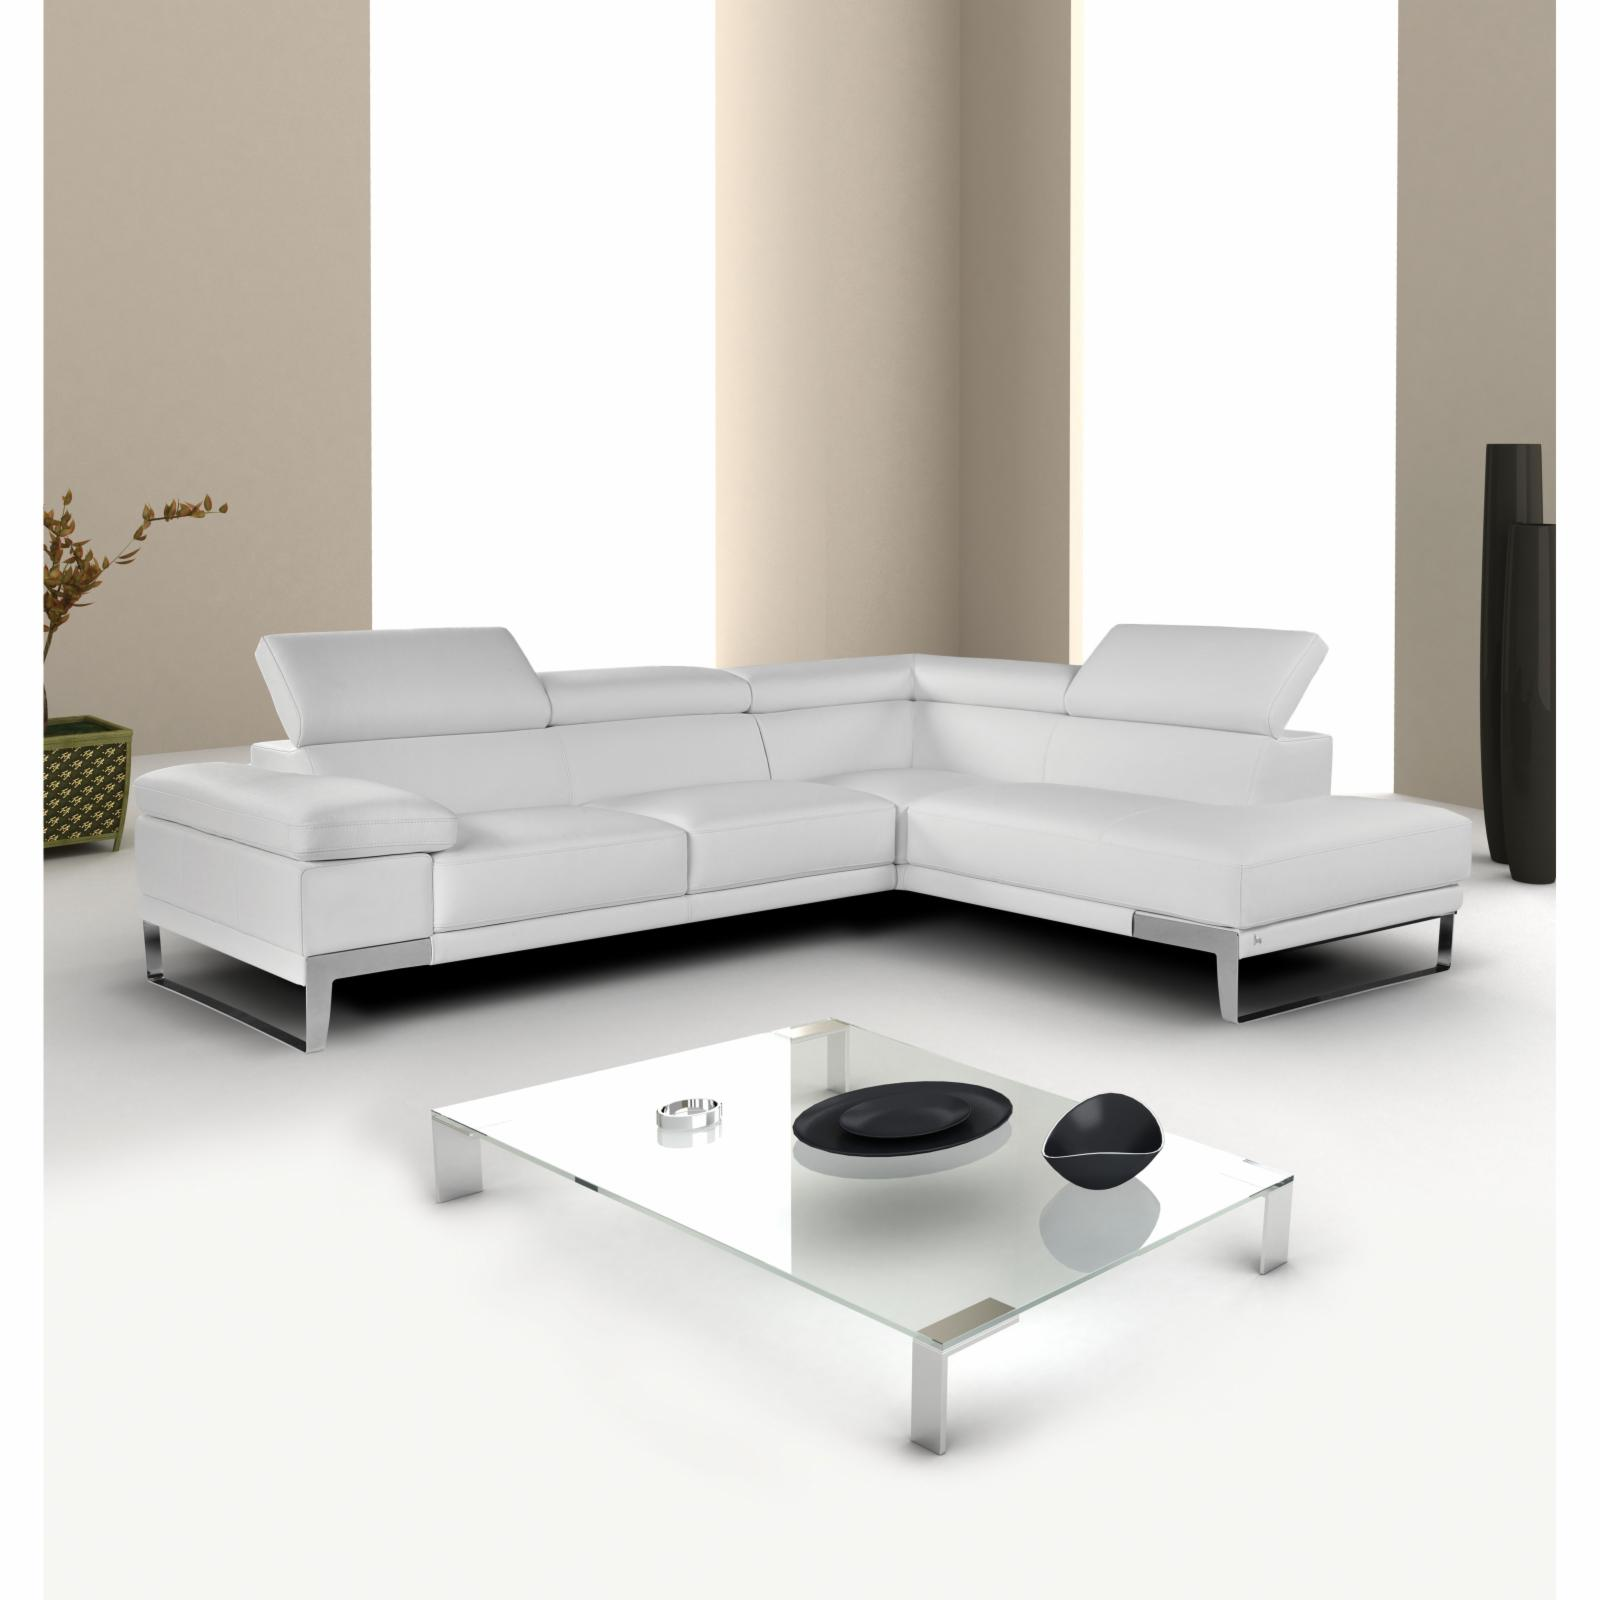 J&M Furniture Nicoletti Domus Right Facing Sectional Sofa...